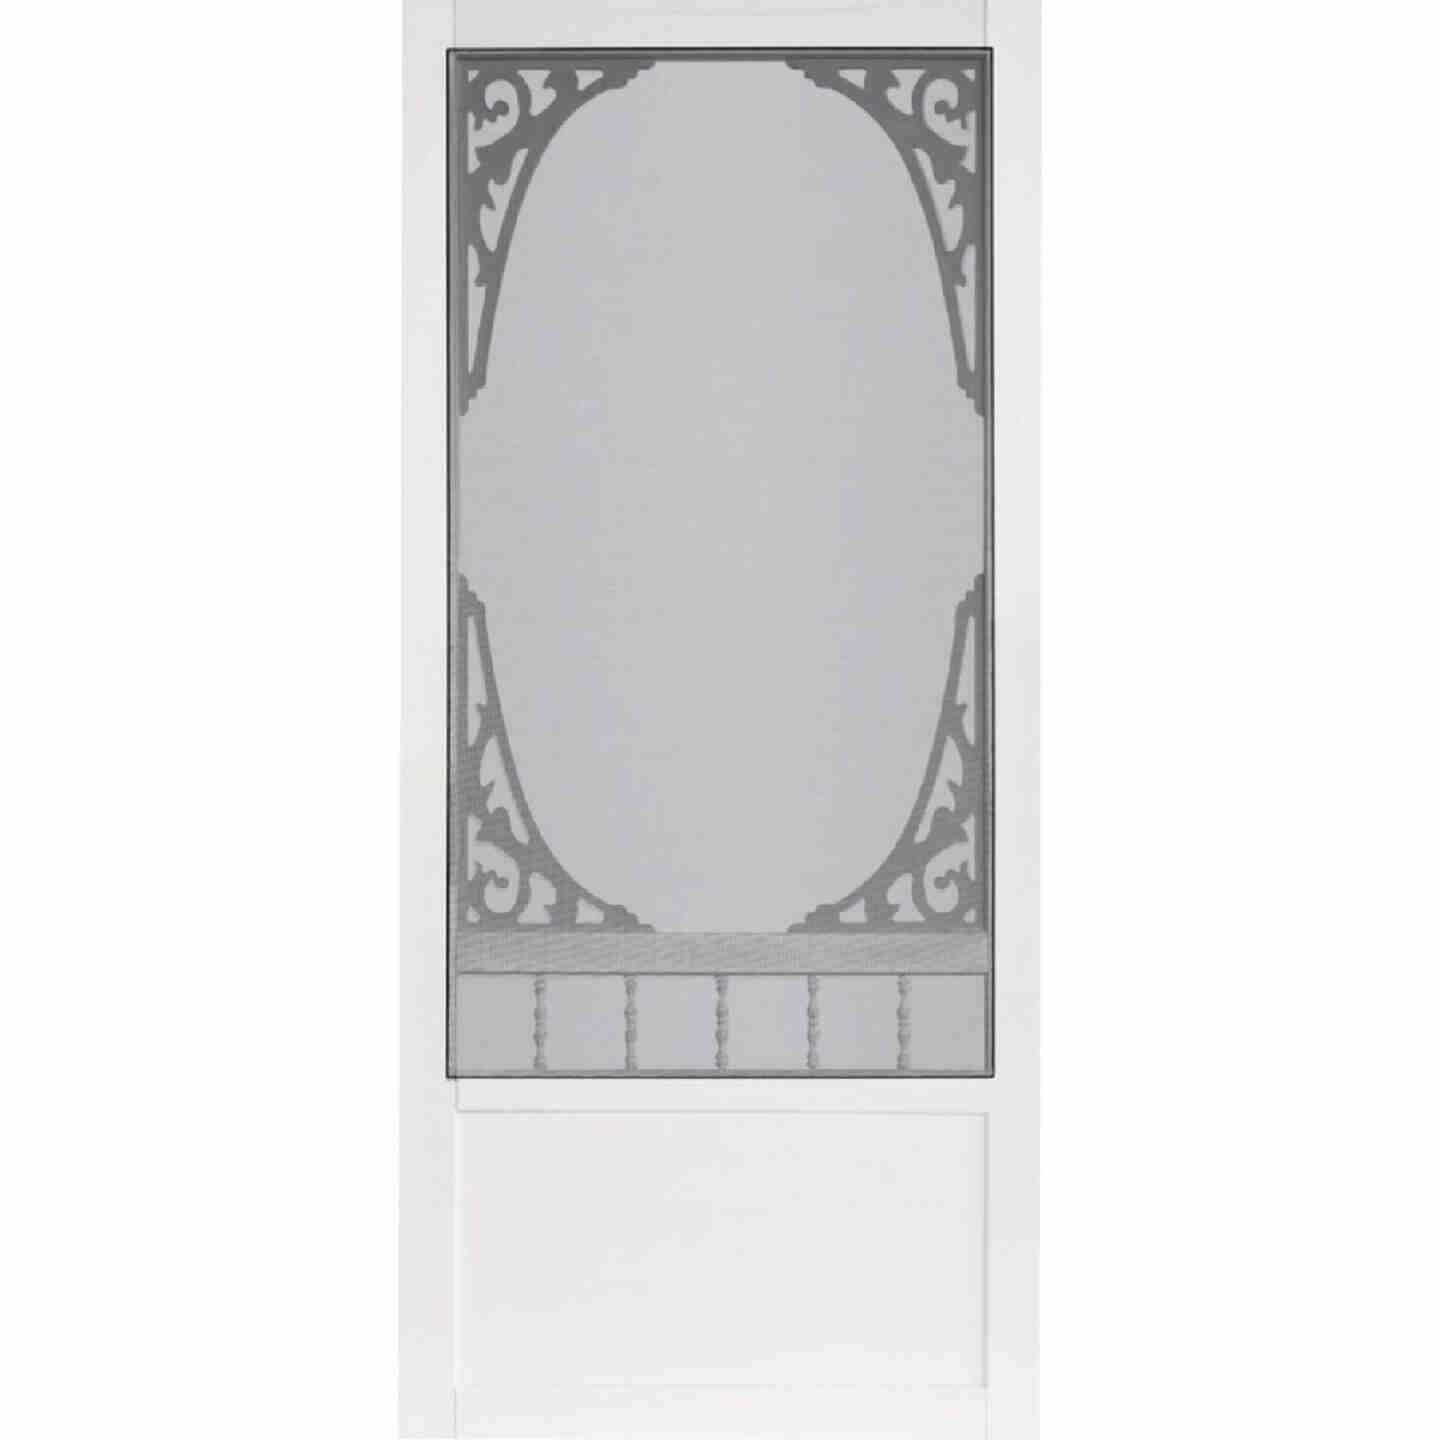 Screen Tight Springview 32 In. W x 80 In. H x 1 In. Thick White Vinyl Screen Door Image 2